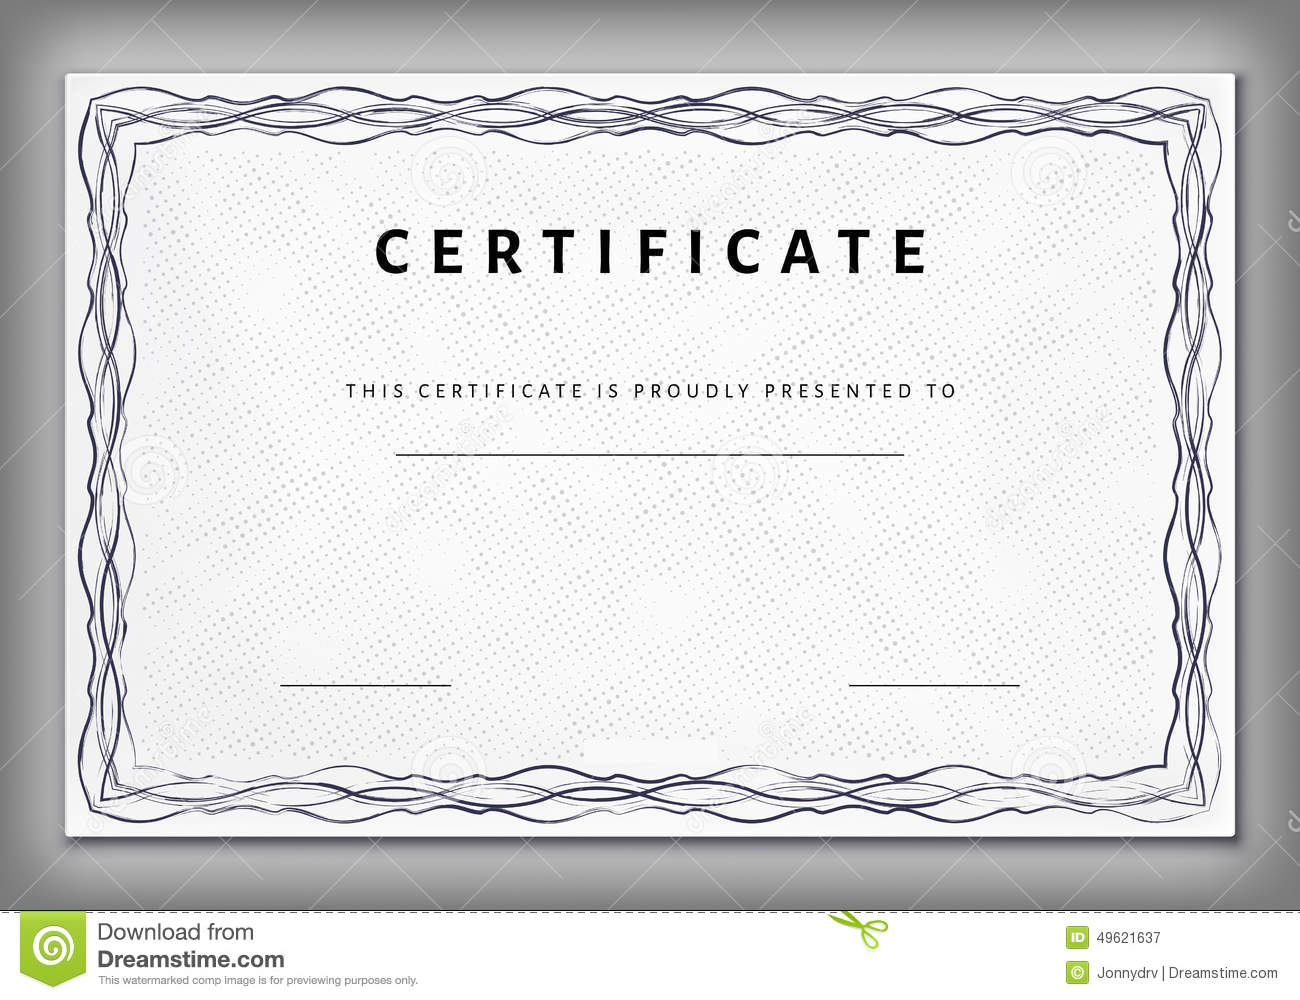 Vintage certificate template choice image templates example free certificate templates vector free download images templates certificate templates vector free download choice image certificate templates yadclub Choice Image